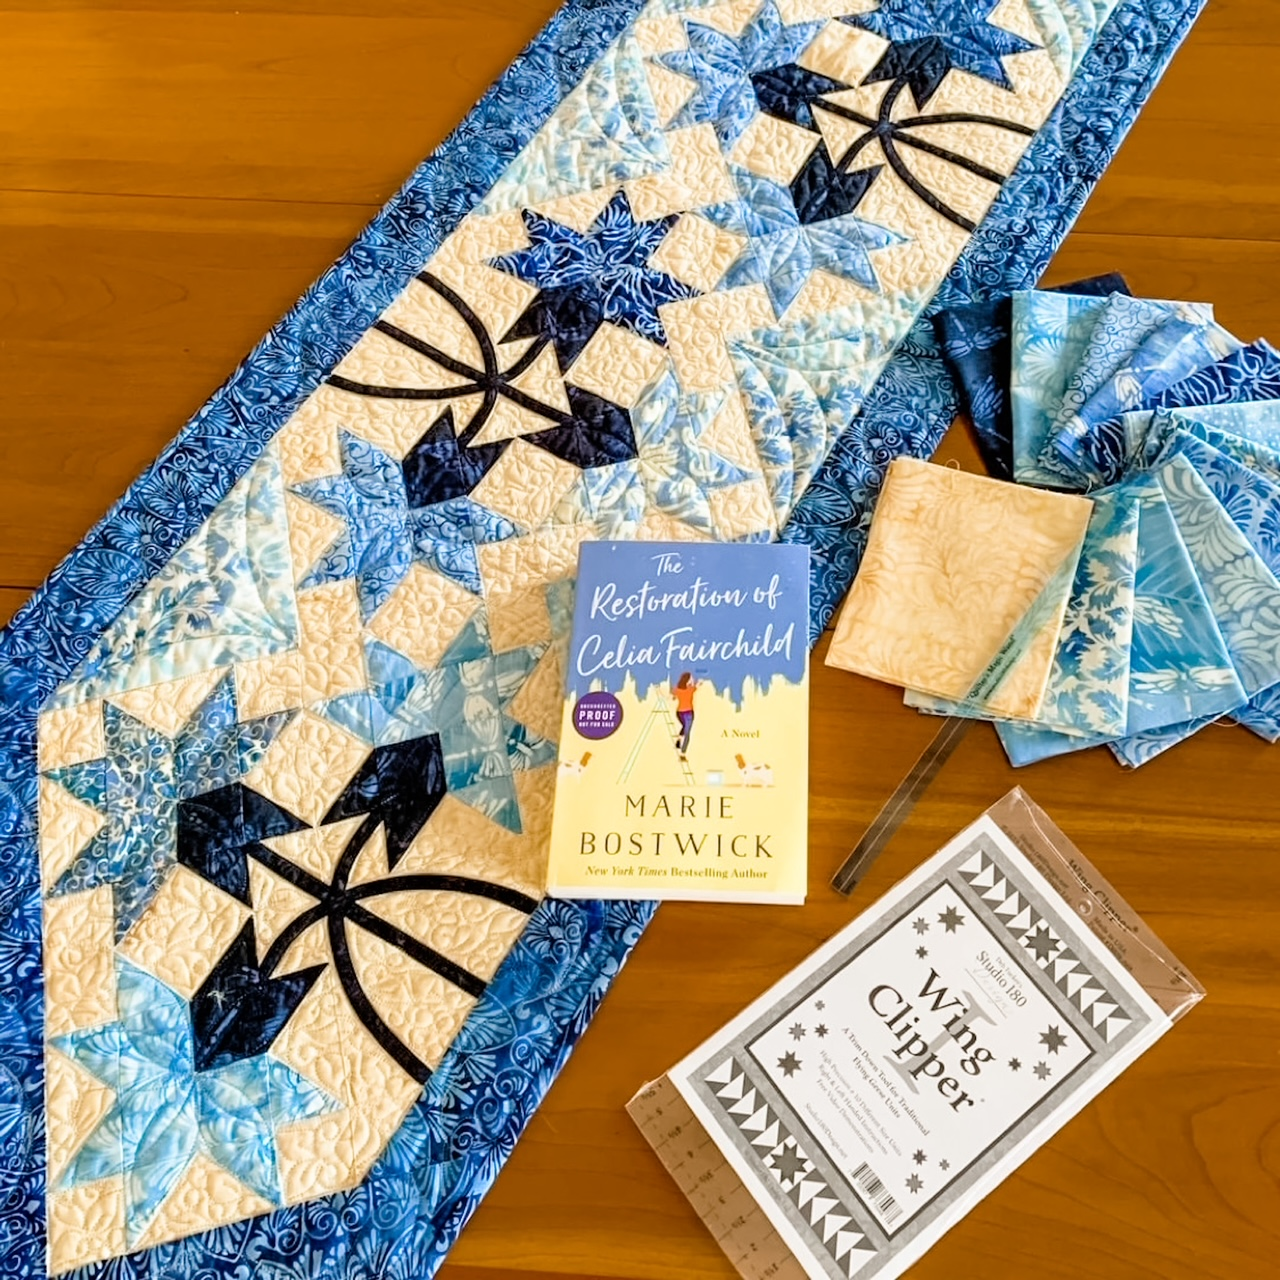 The quilted table runner with Marie's novel and fabric swatches surrounding it.